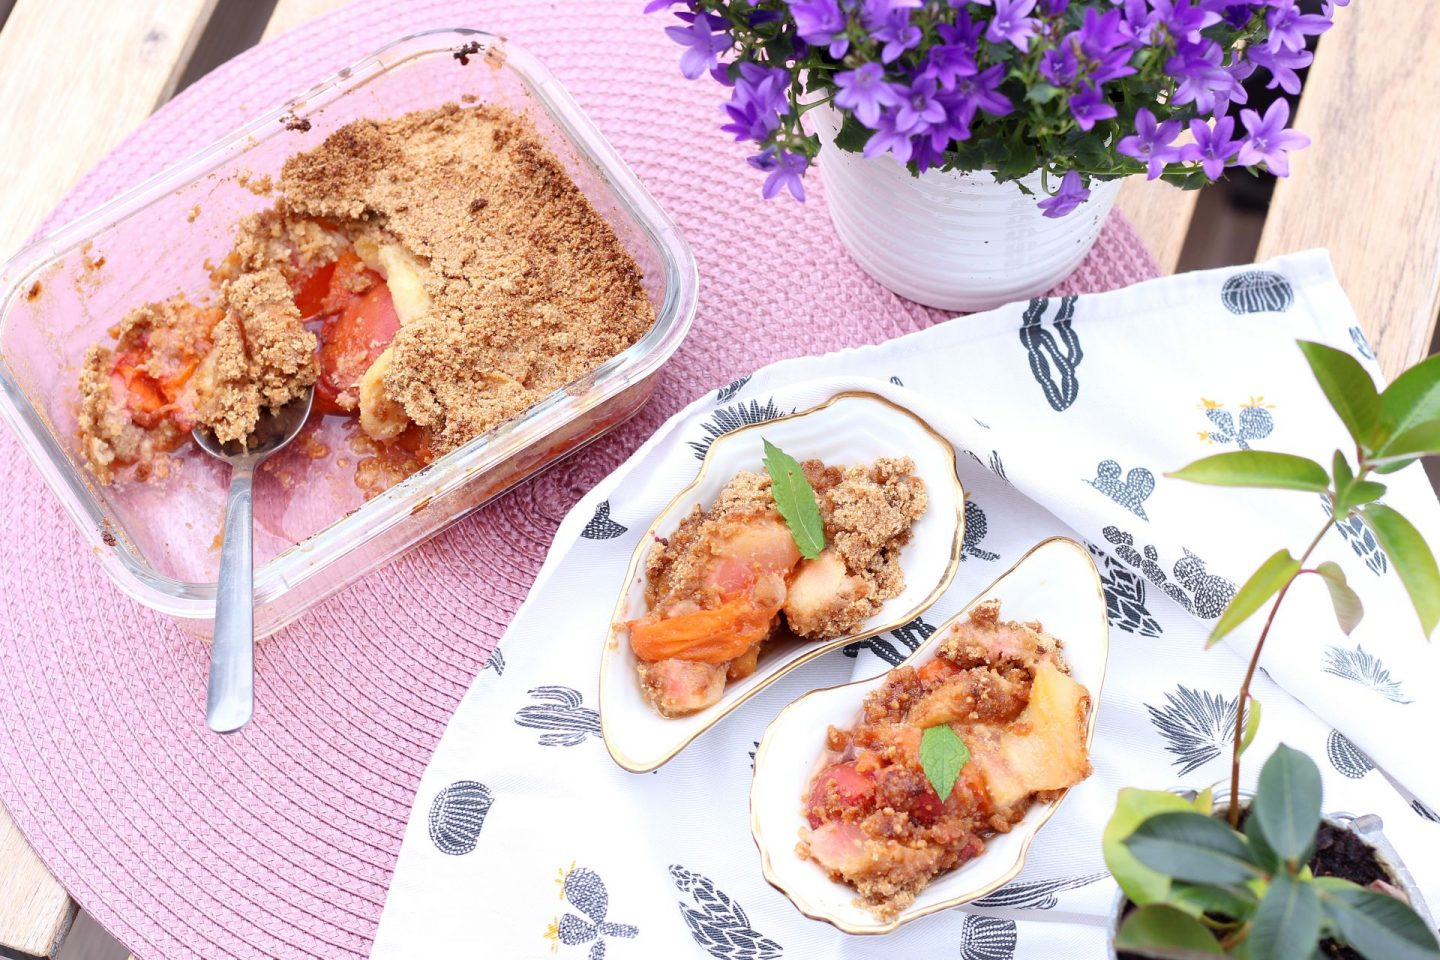 Apricot peanut butter crumble